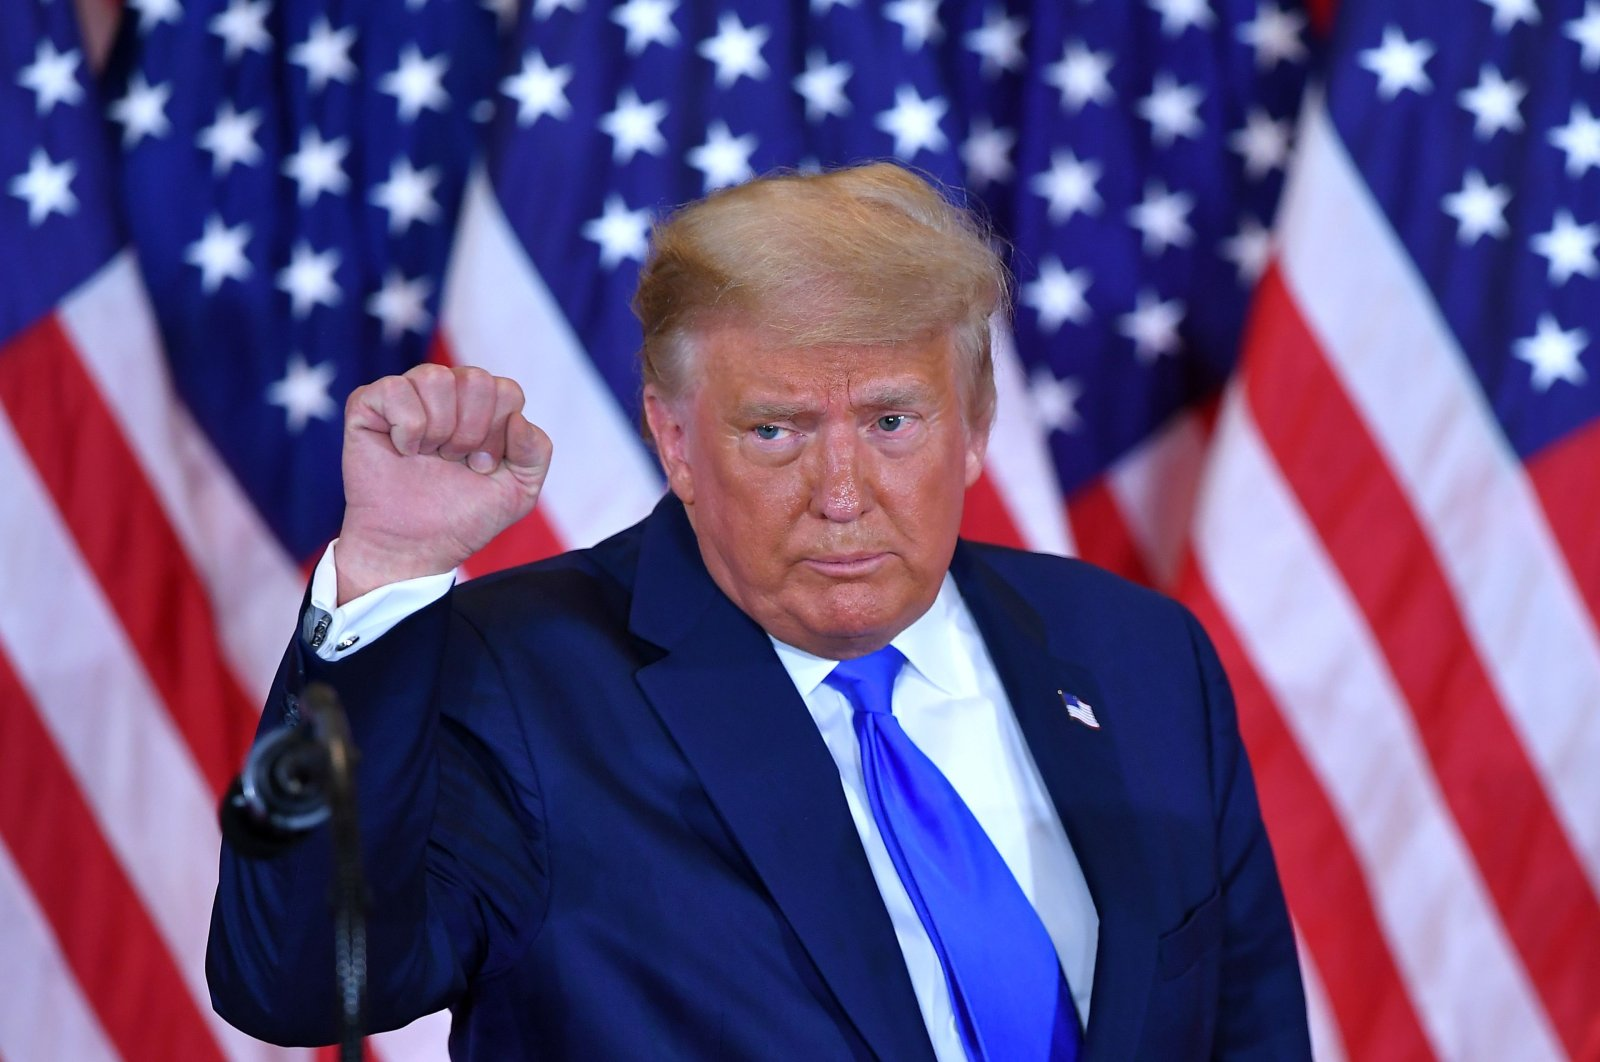 U.S. President Donald Trump pumps his fist after speaking during the election night in the East Room of the White House in Washington, D.C., early on Nov. 4, 2020. (AFP Photo)